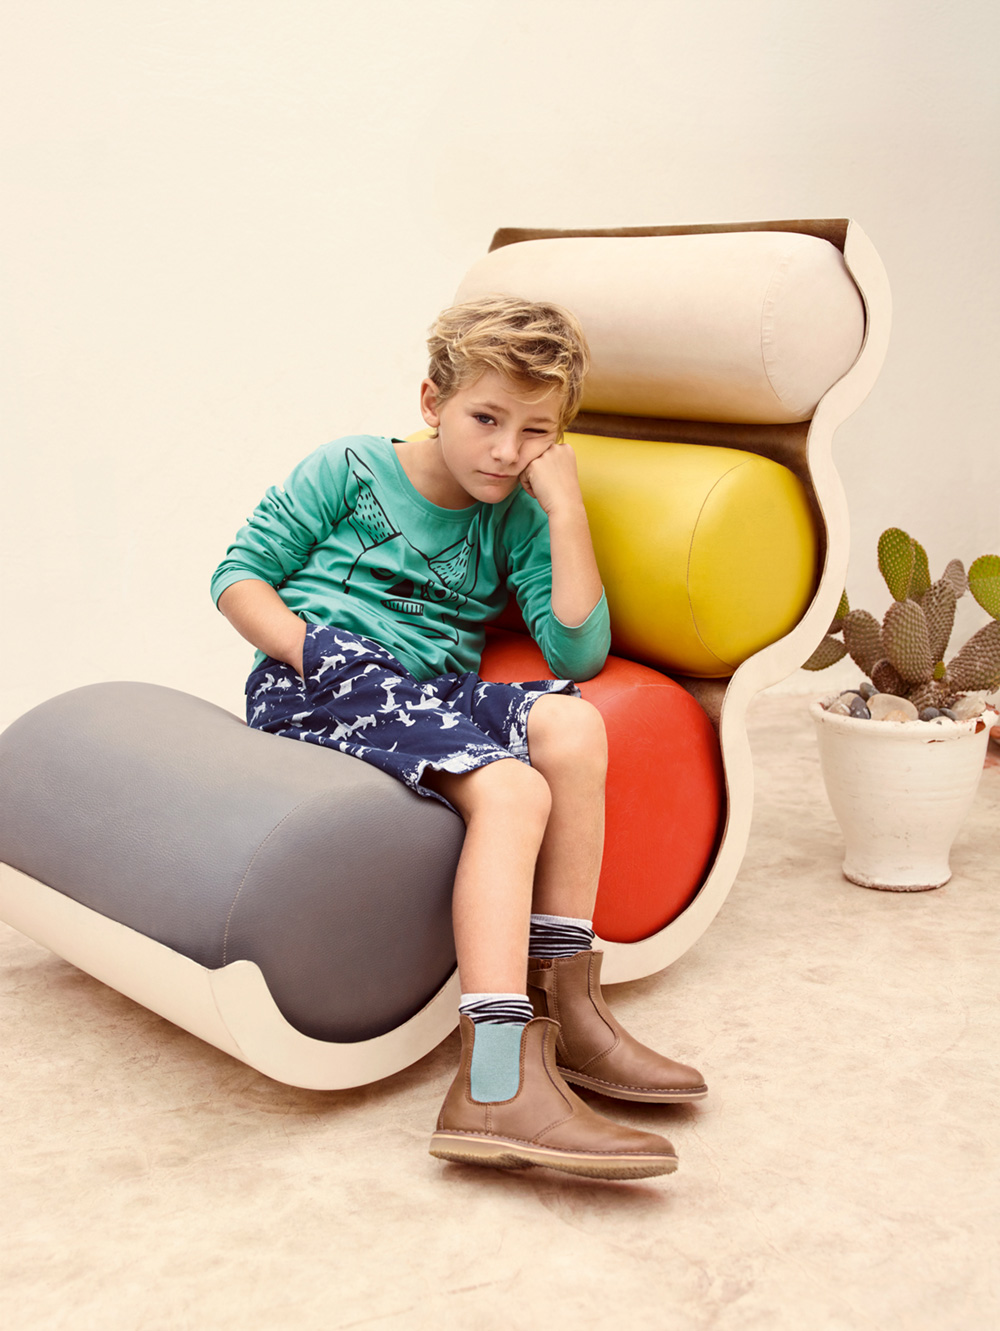 Goertz-Kids-Catalogue-AW-2015-4.jpg